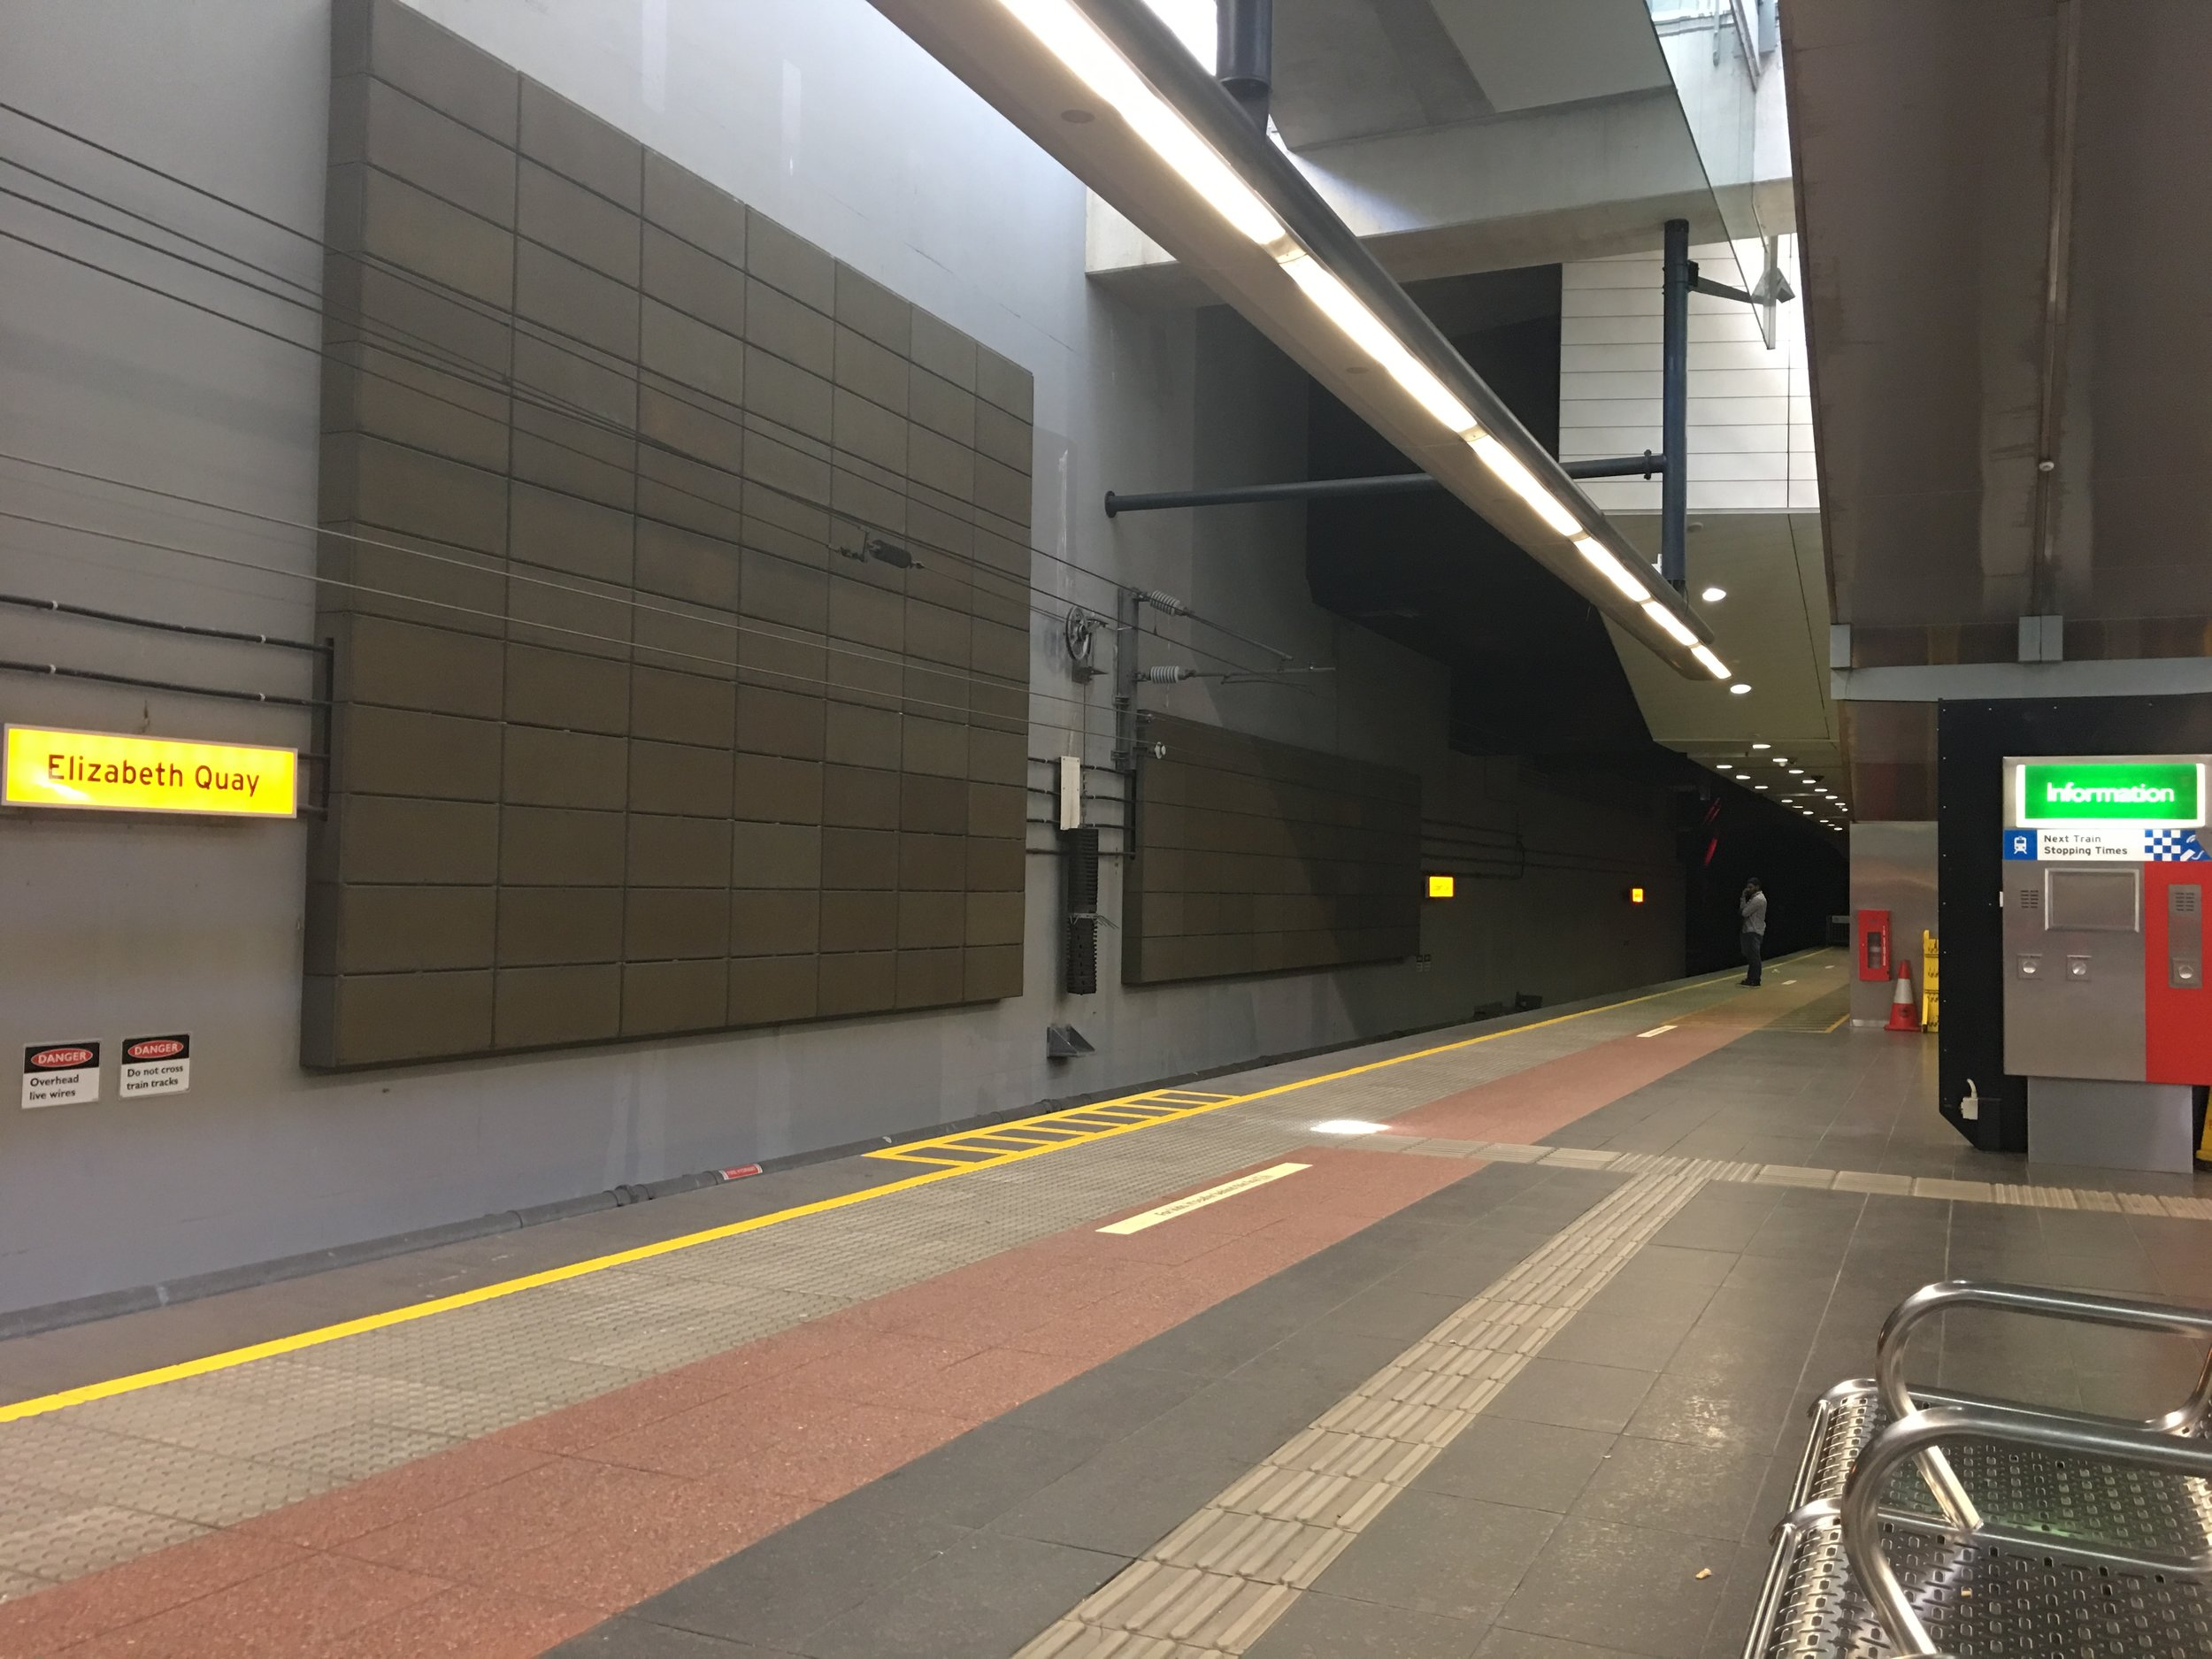 Waiting for our train at Perth station